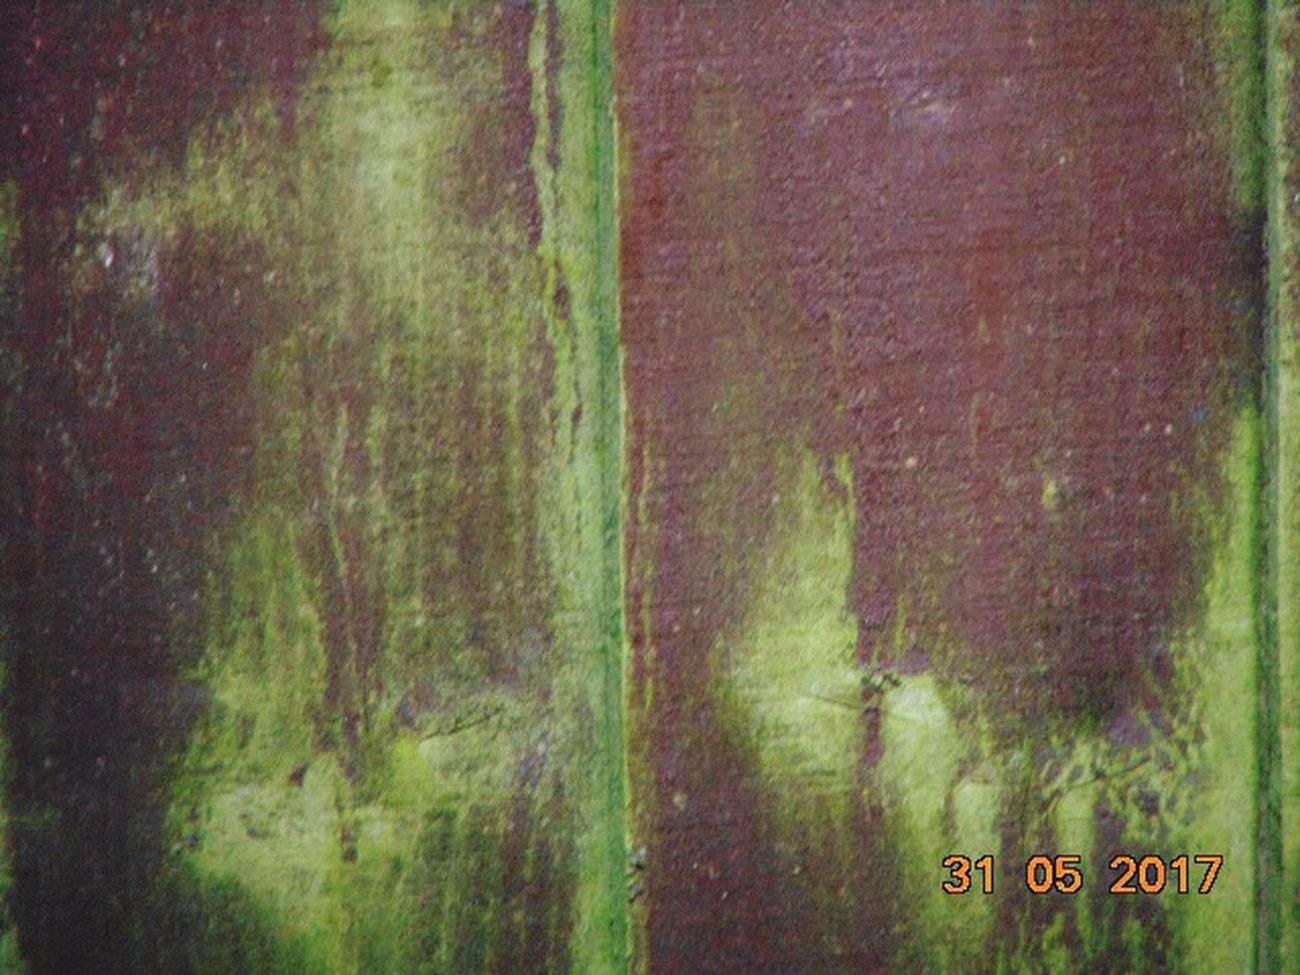 Day No People Outdoors Backgrounds Wood Grain Texture Close-up Painted Wood Textures Green Growth Passing Of Time Nature Takes It Back